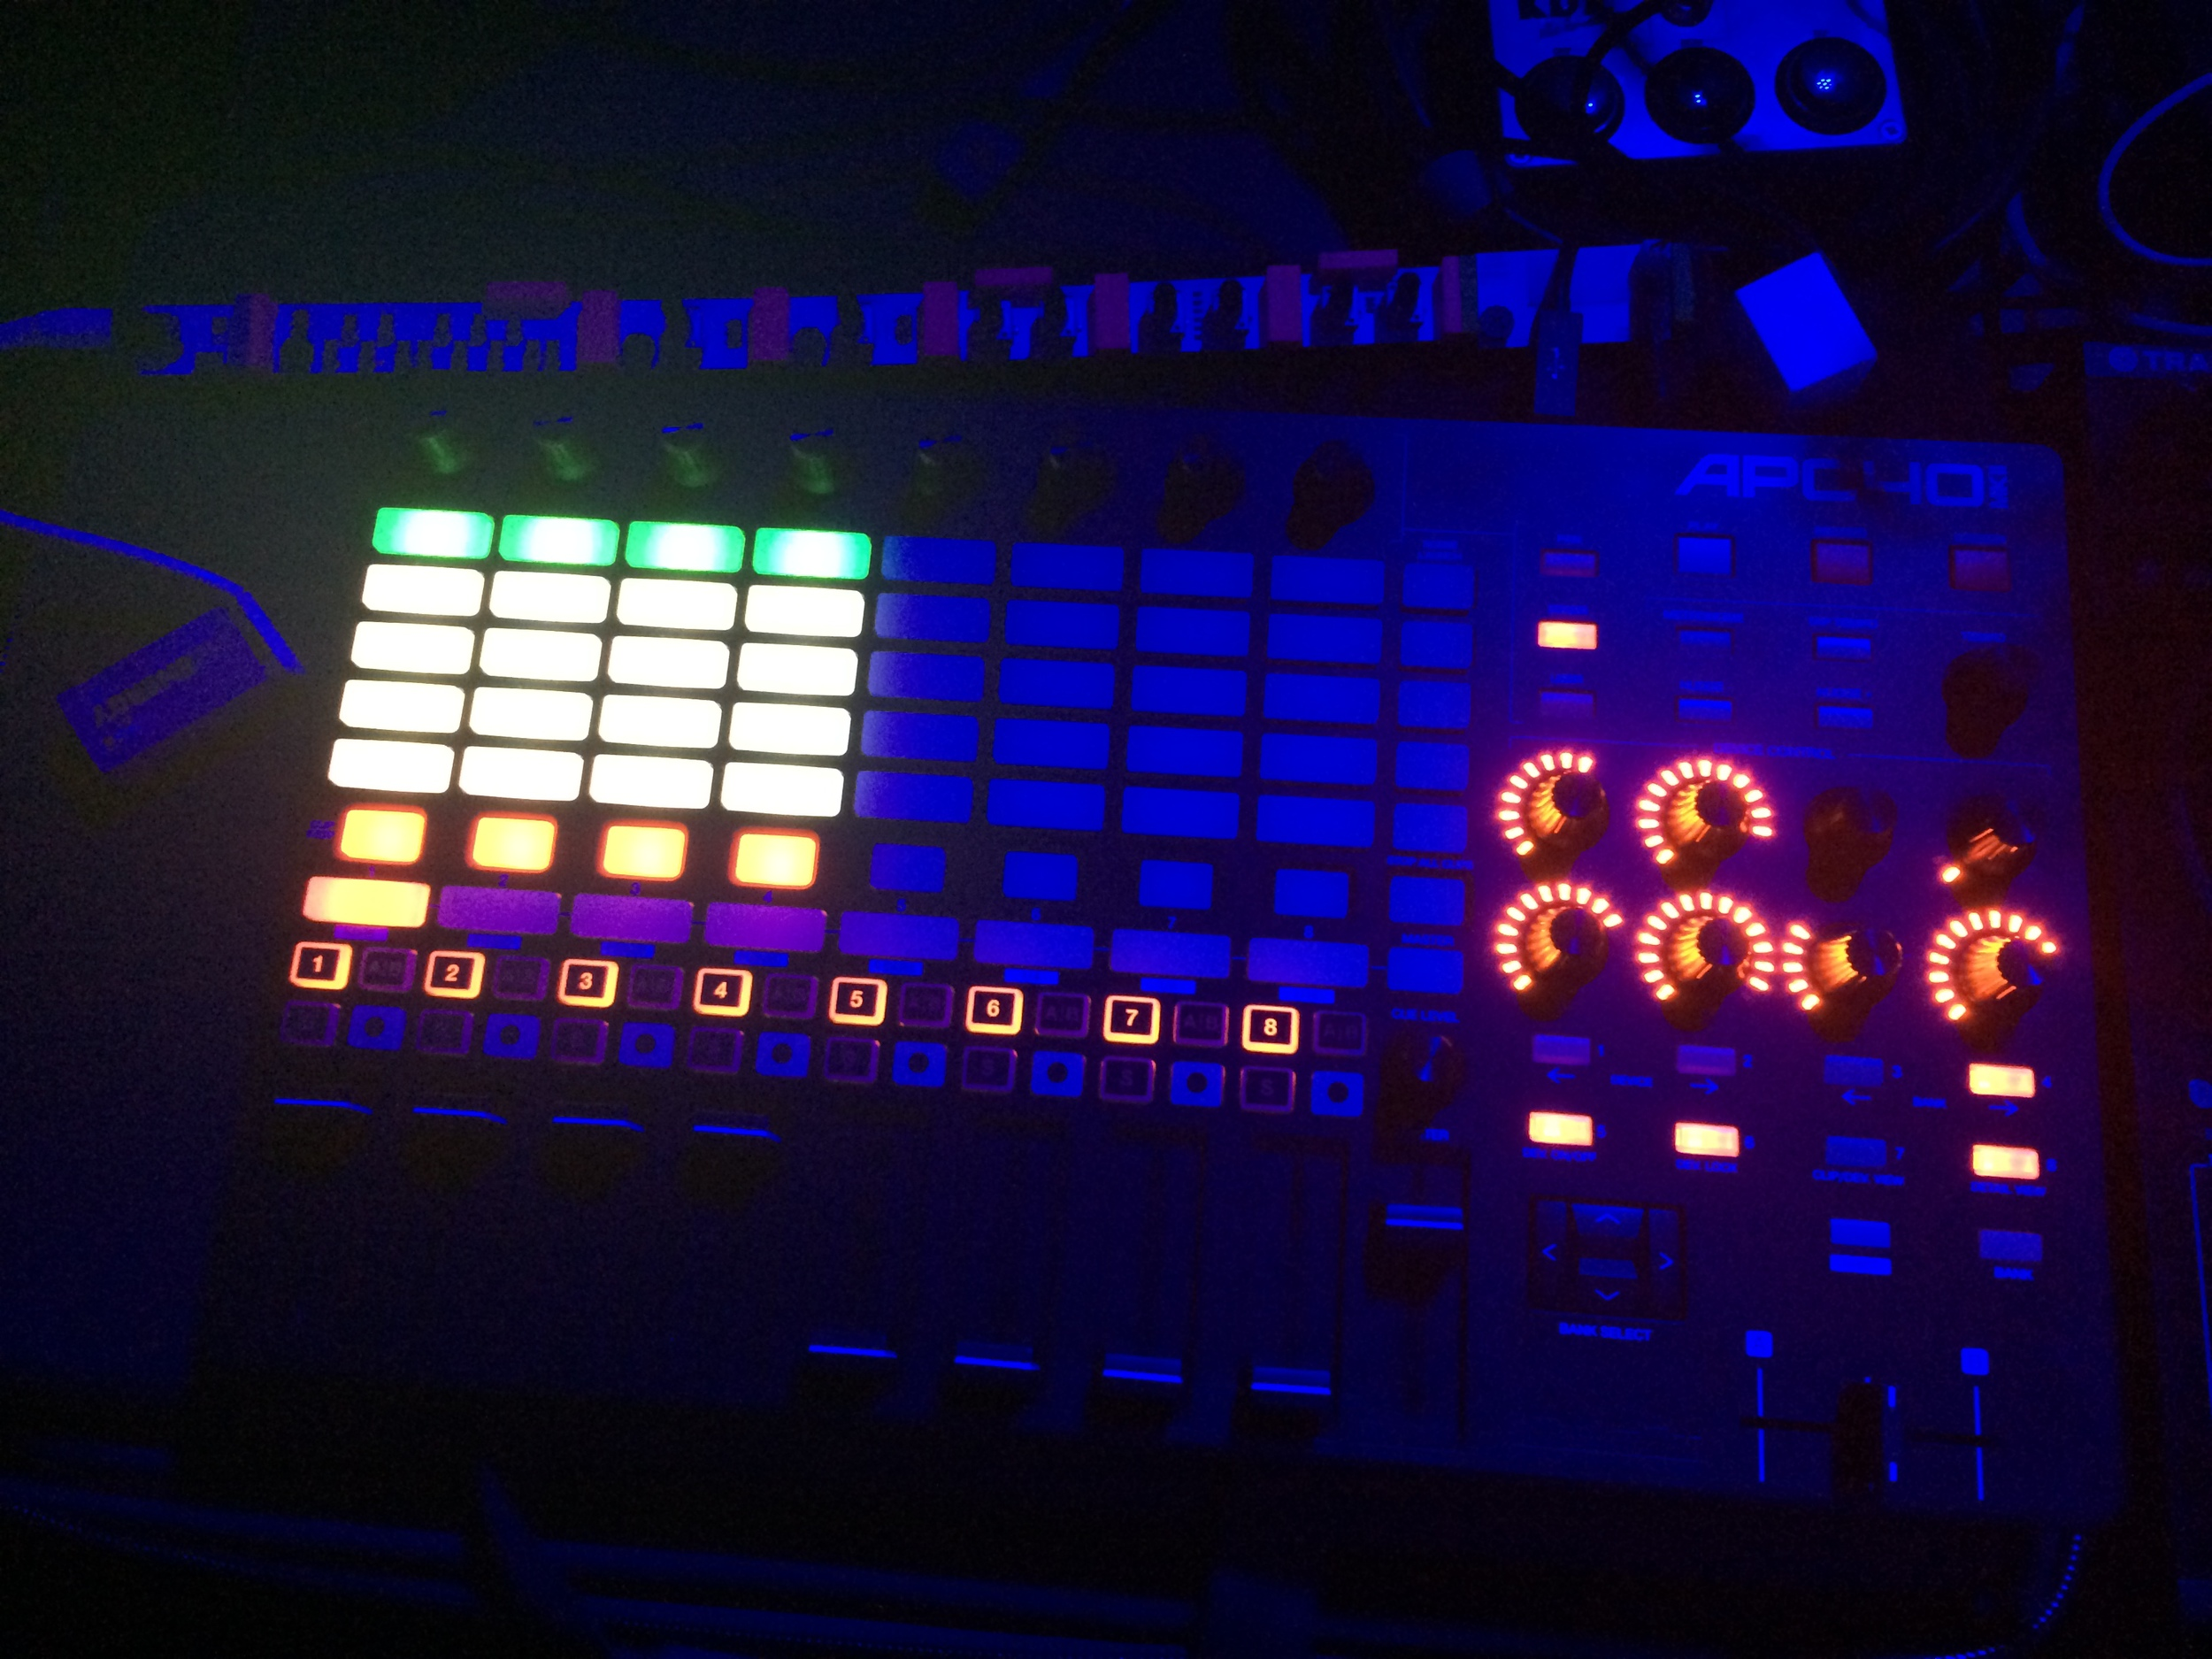 NGHT DRPS' live setup: Akai APC40mk2, Korg & littleBits Synth Kit (NGHT DRPS' Dub Siren Patch), TEILE KD7 Keinedelay